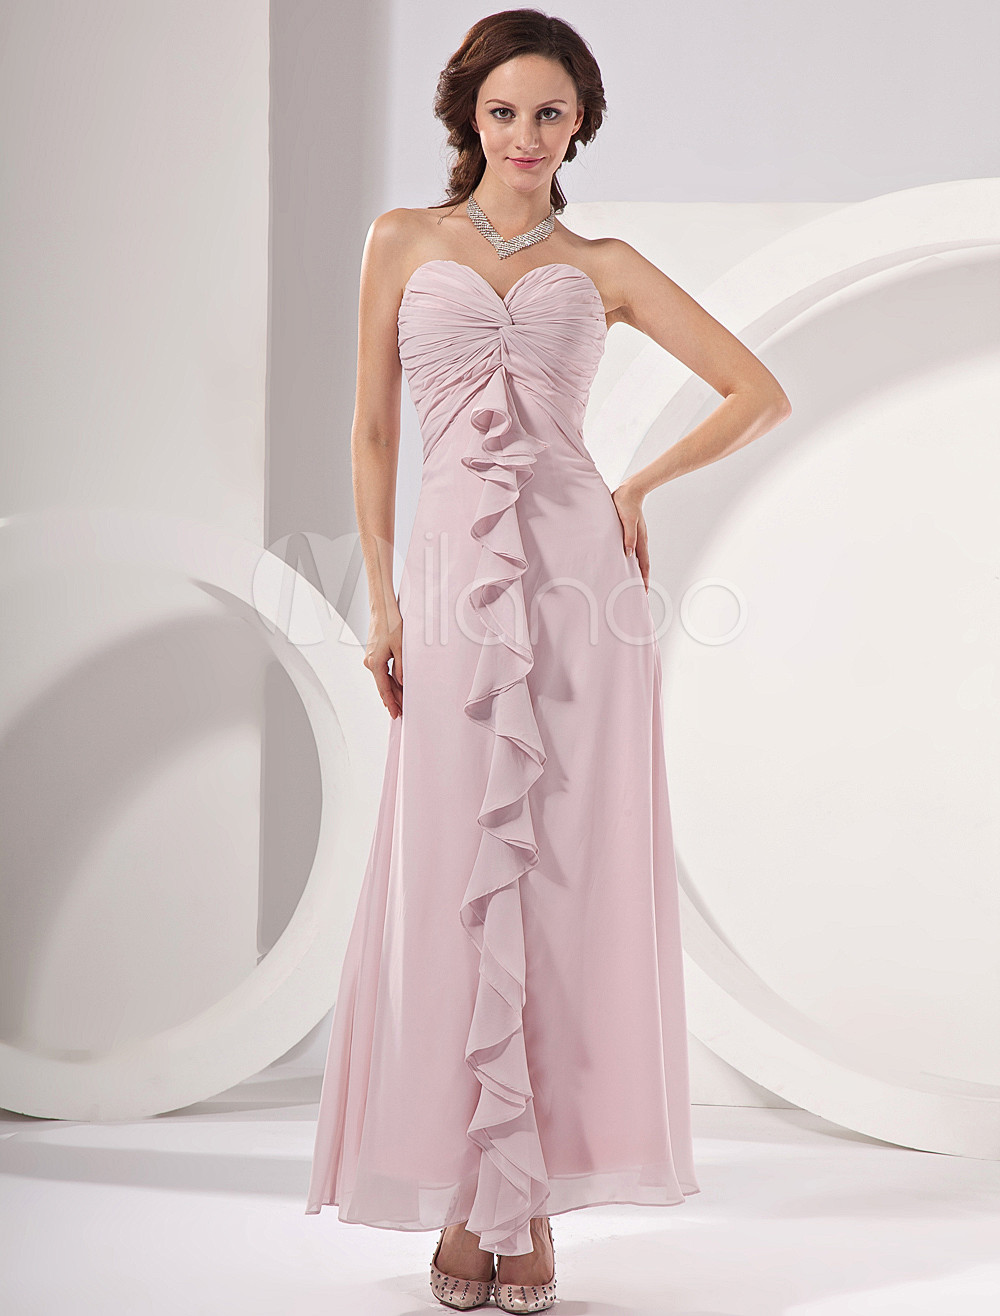 Sheath Pink Chiffon Cascading Ruffle Sweetheart Neck Bridesmaid Dress